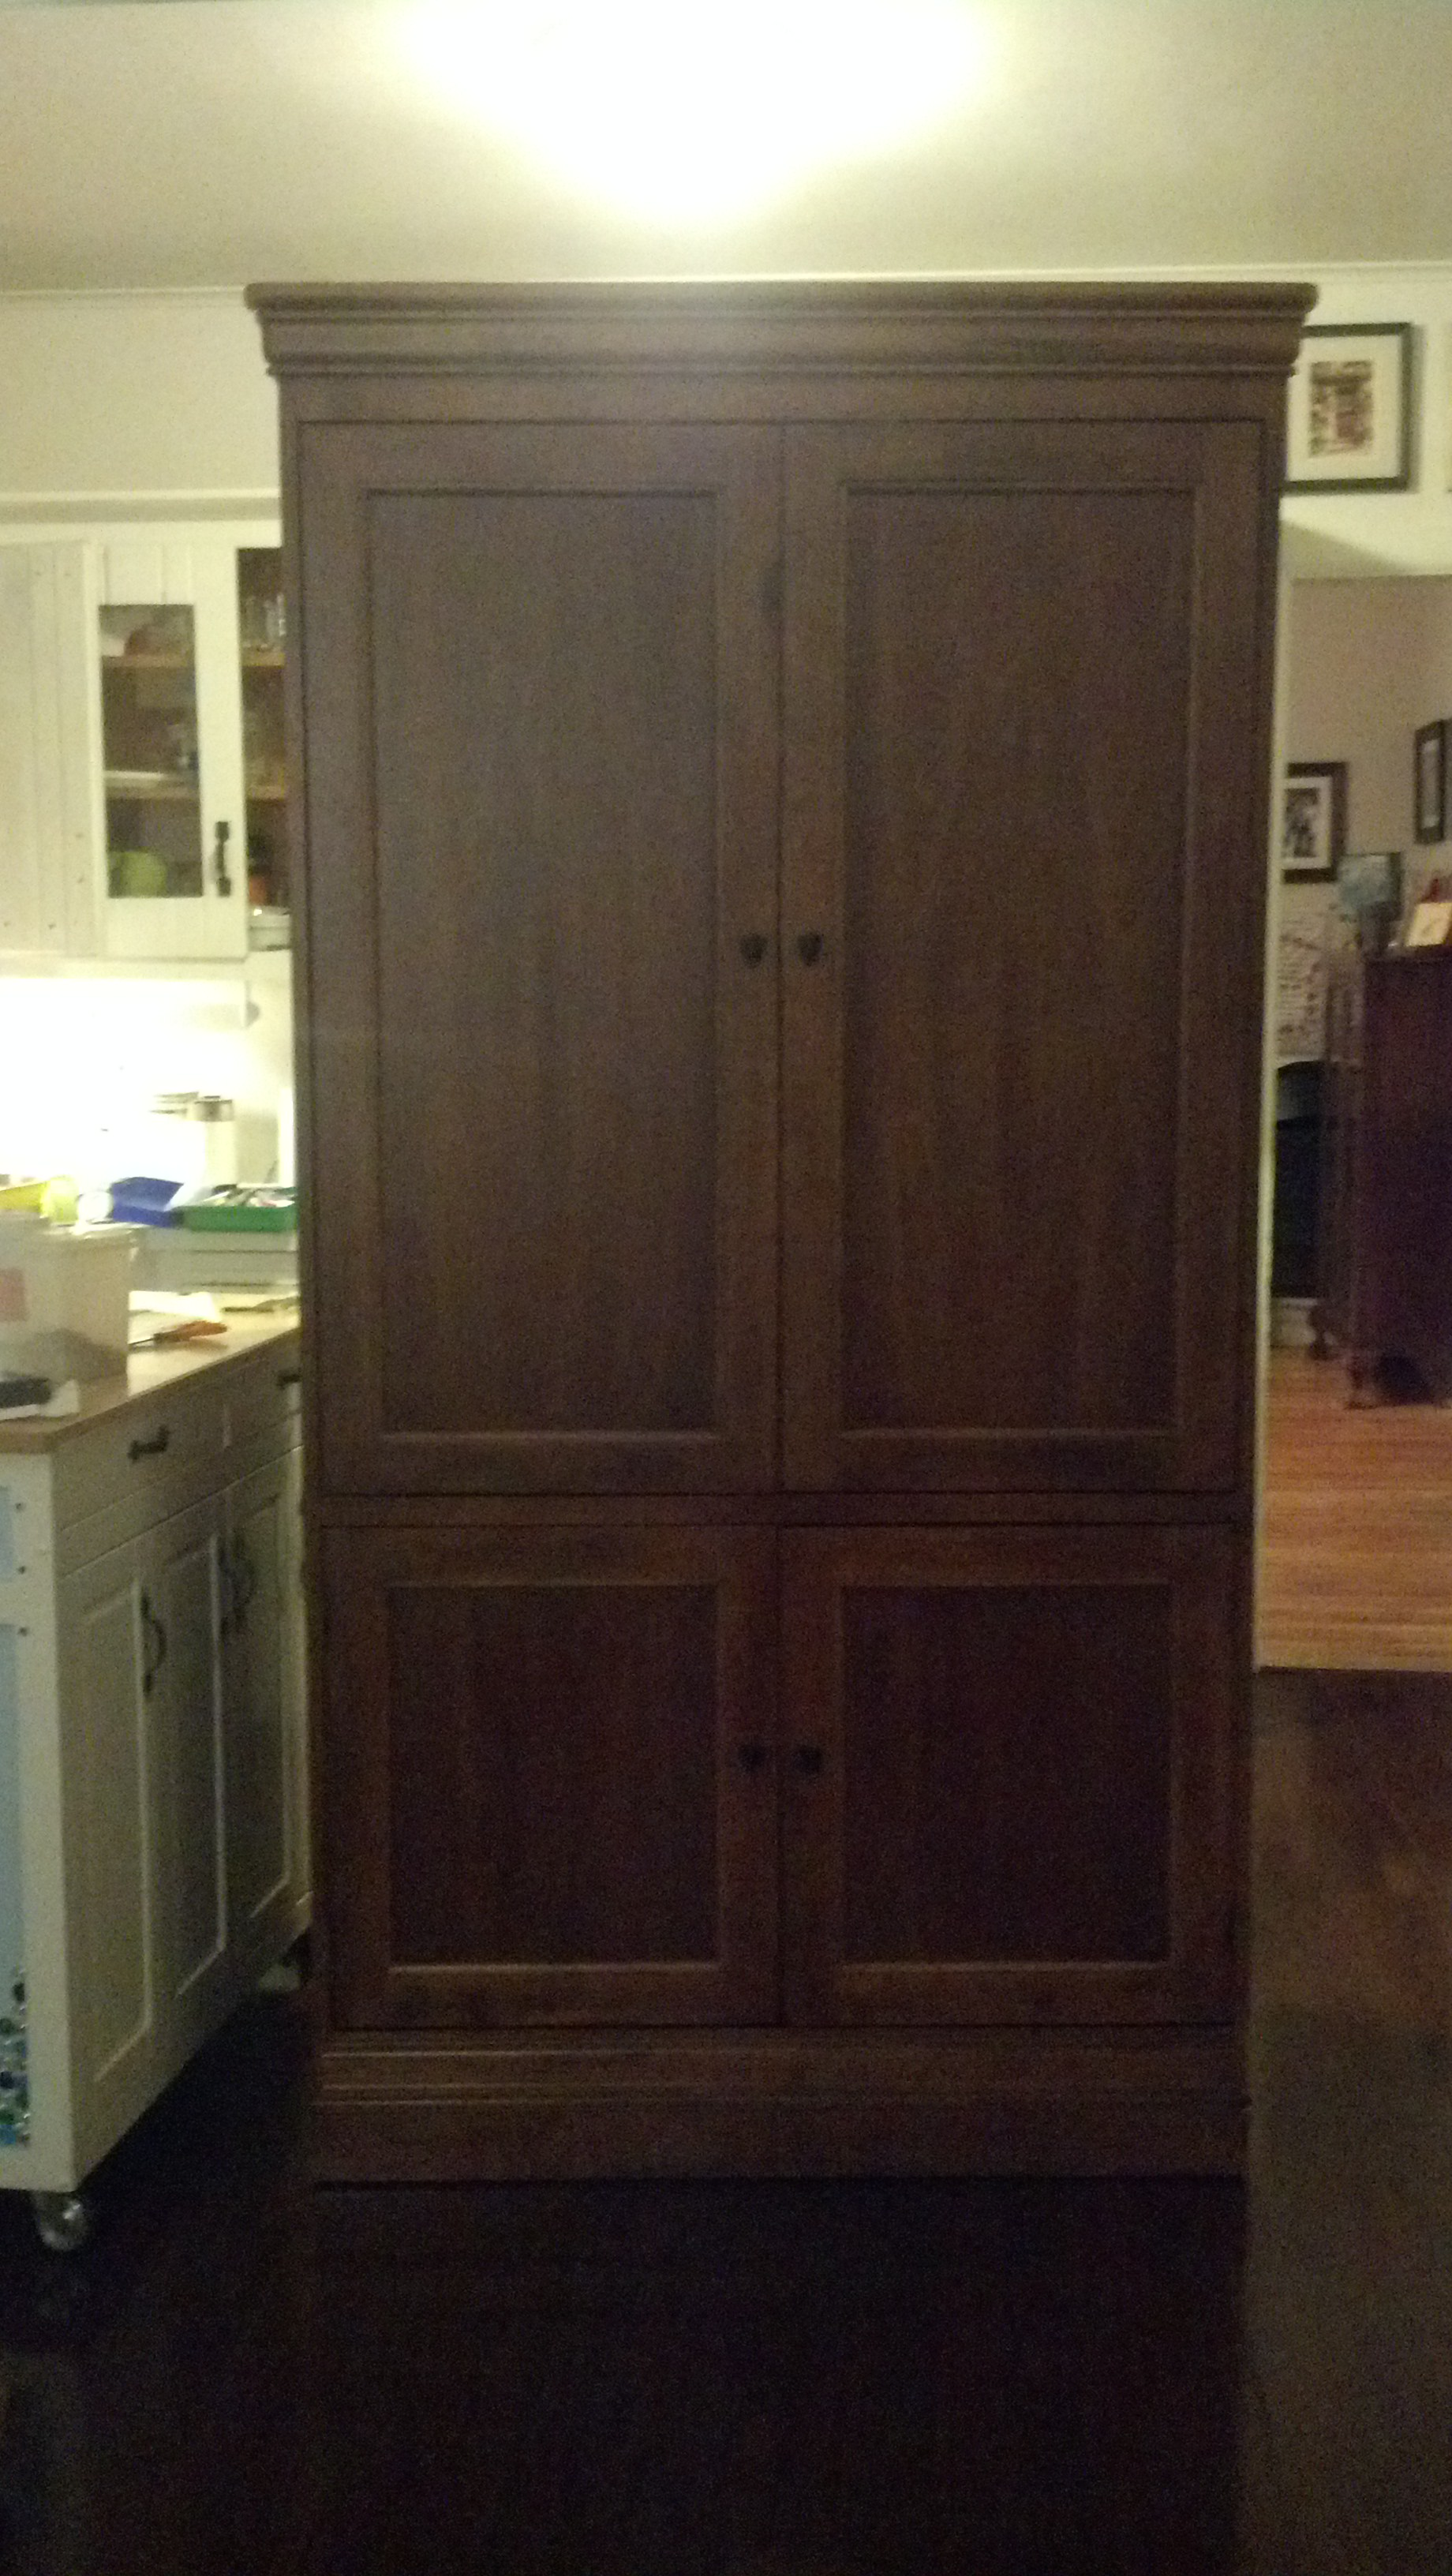 Hooker Entertainment Center Armoire Tv Television Cd Dvd